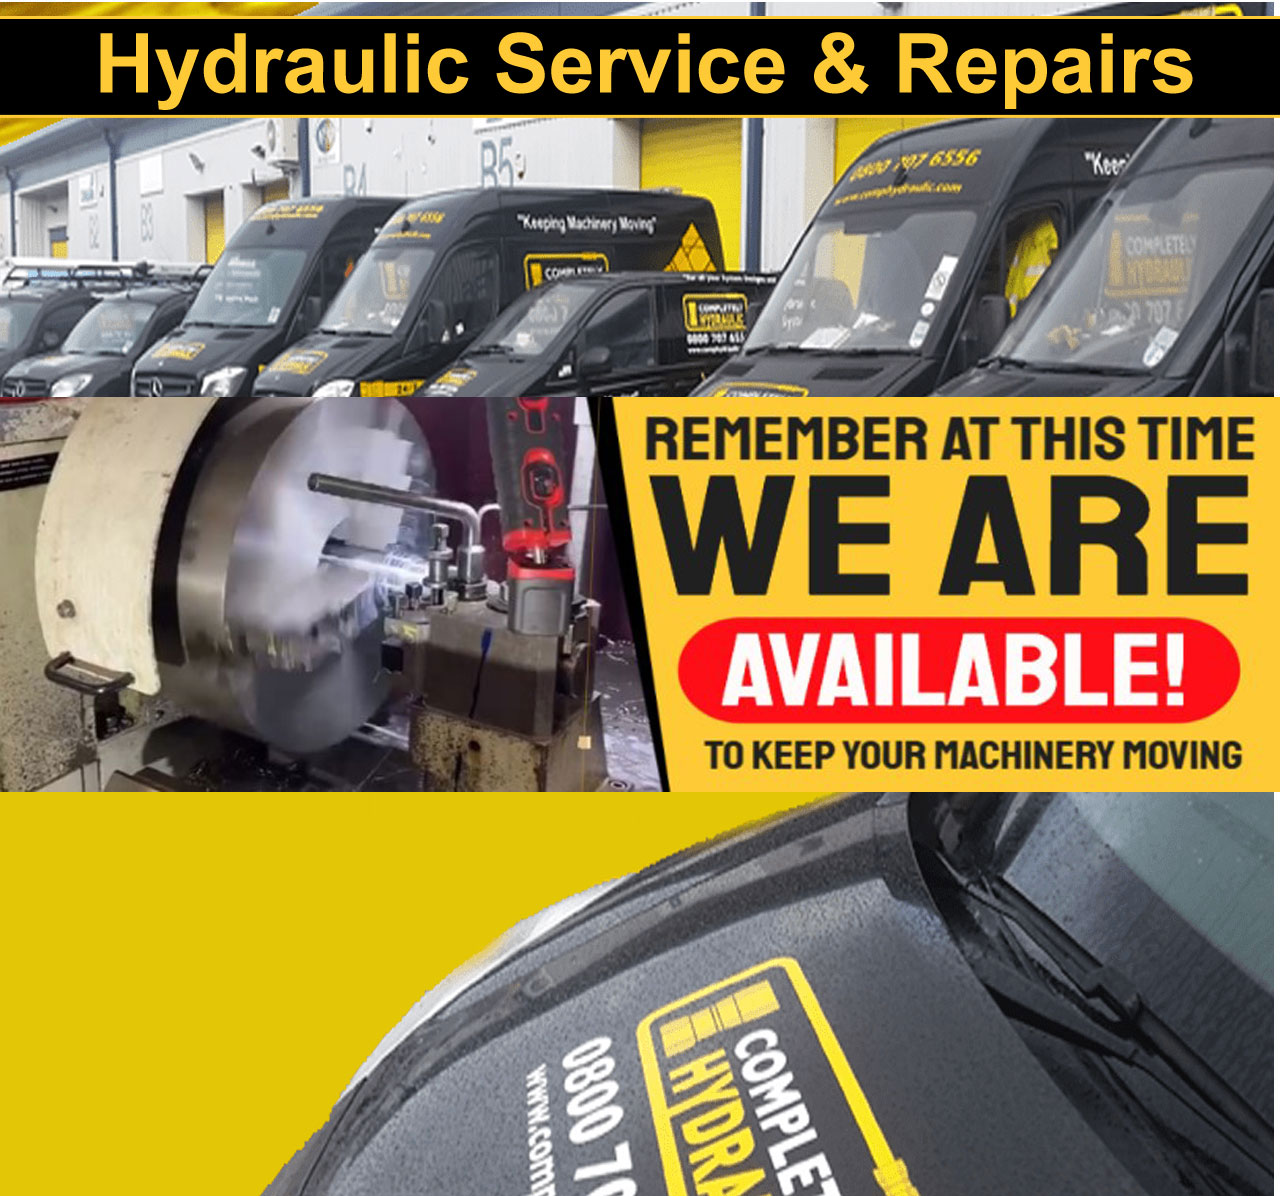 Completely Hydraulic continues exemplary 24-hour service delivery amidst COVID-19 pandemic